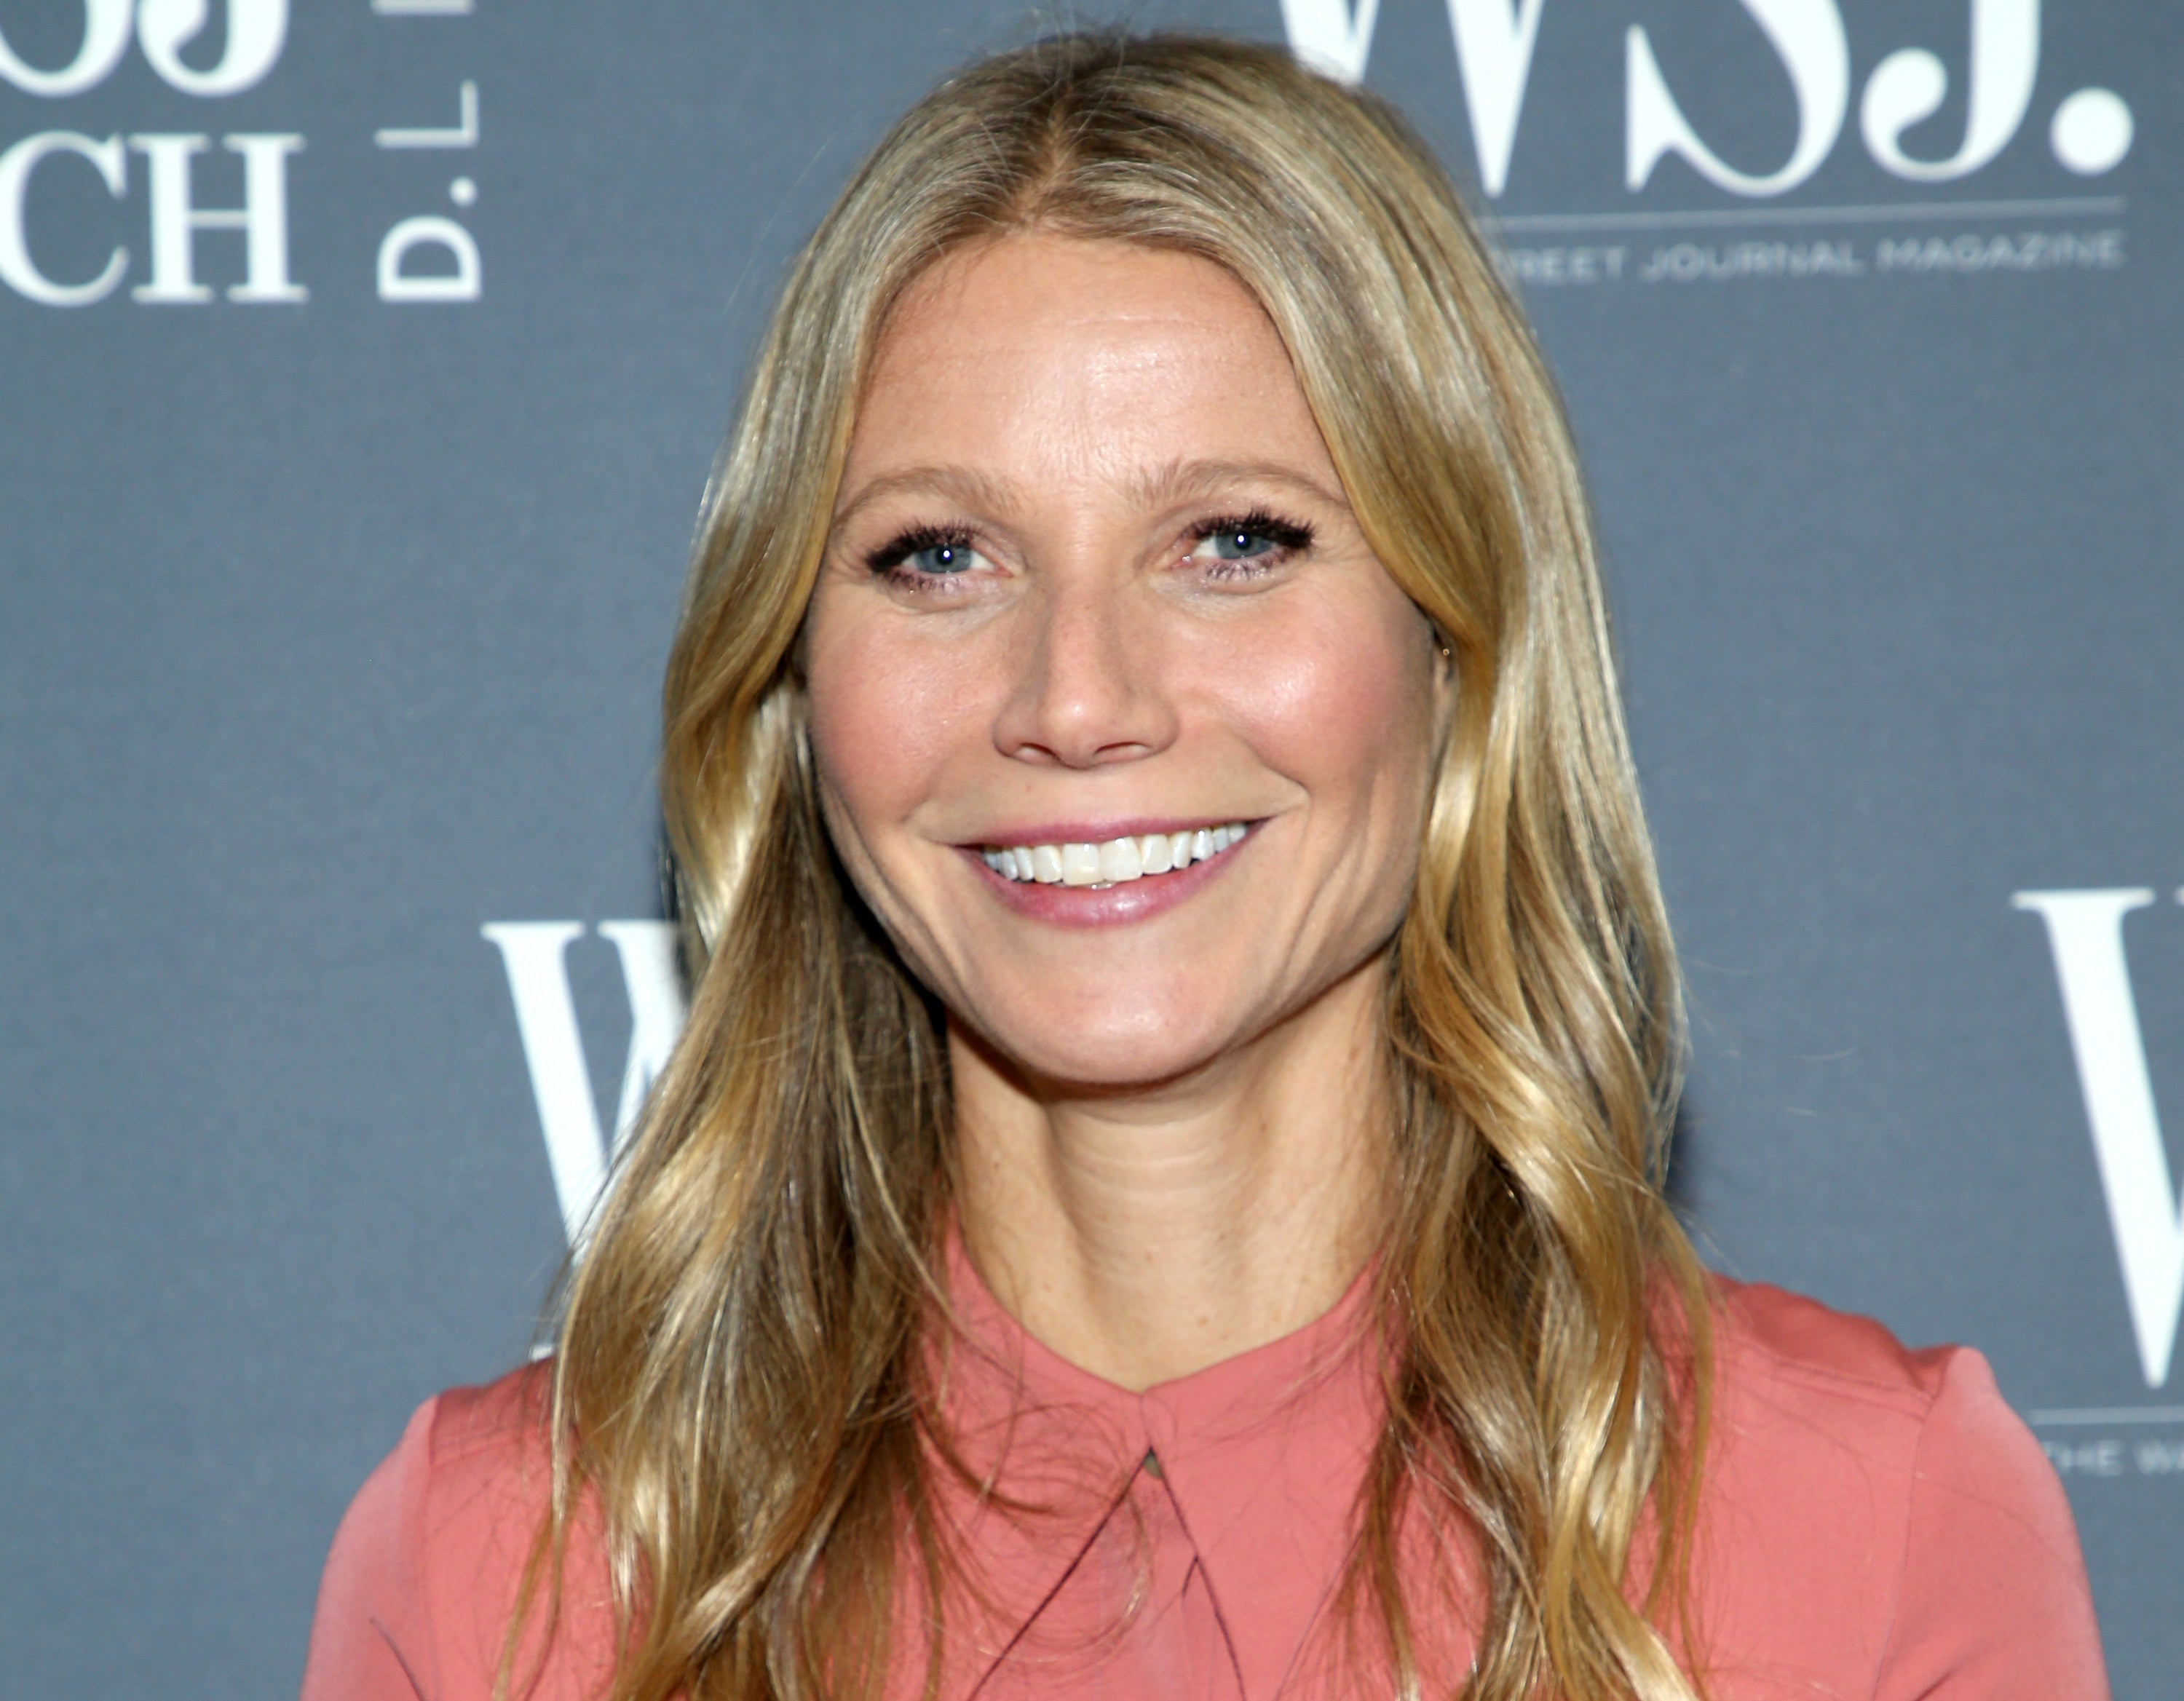 Gwyneth smiles in a pink shirt at an event